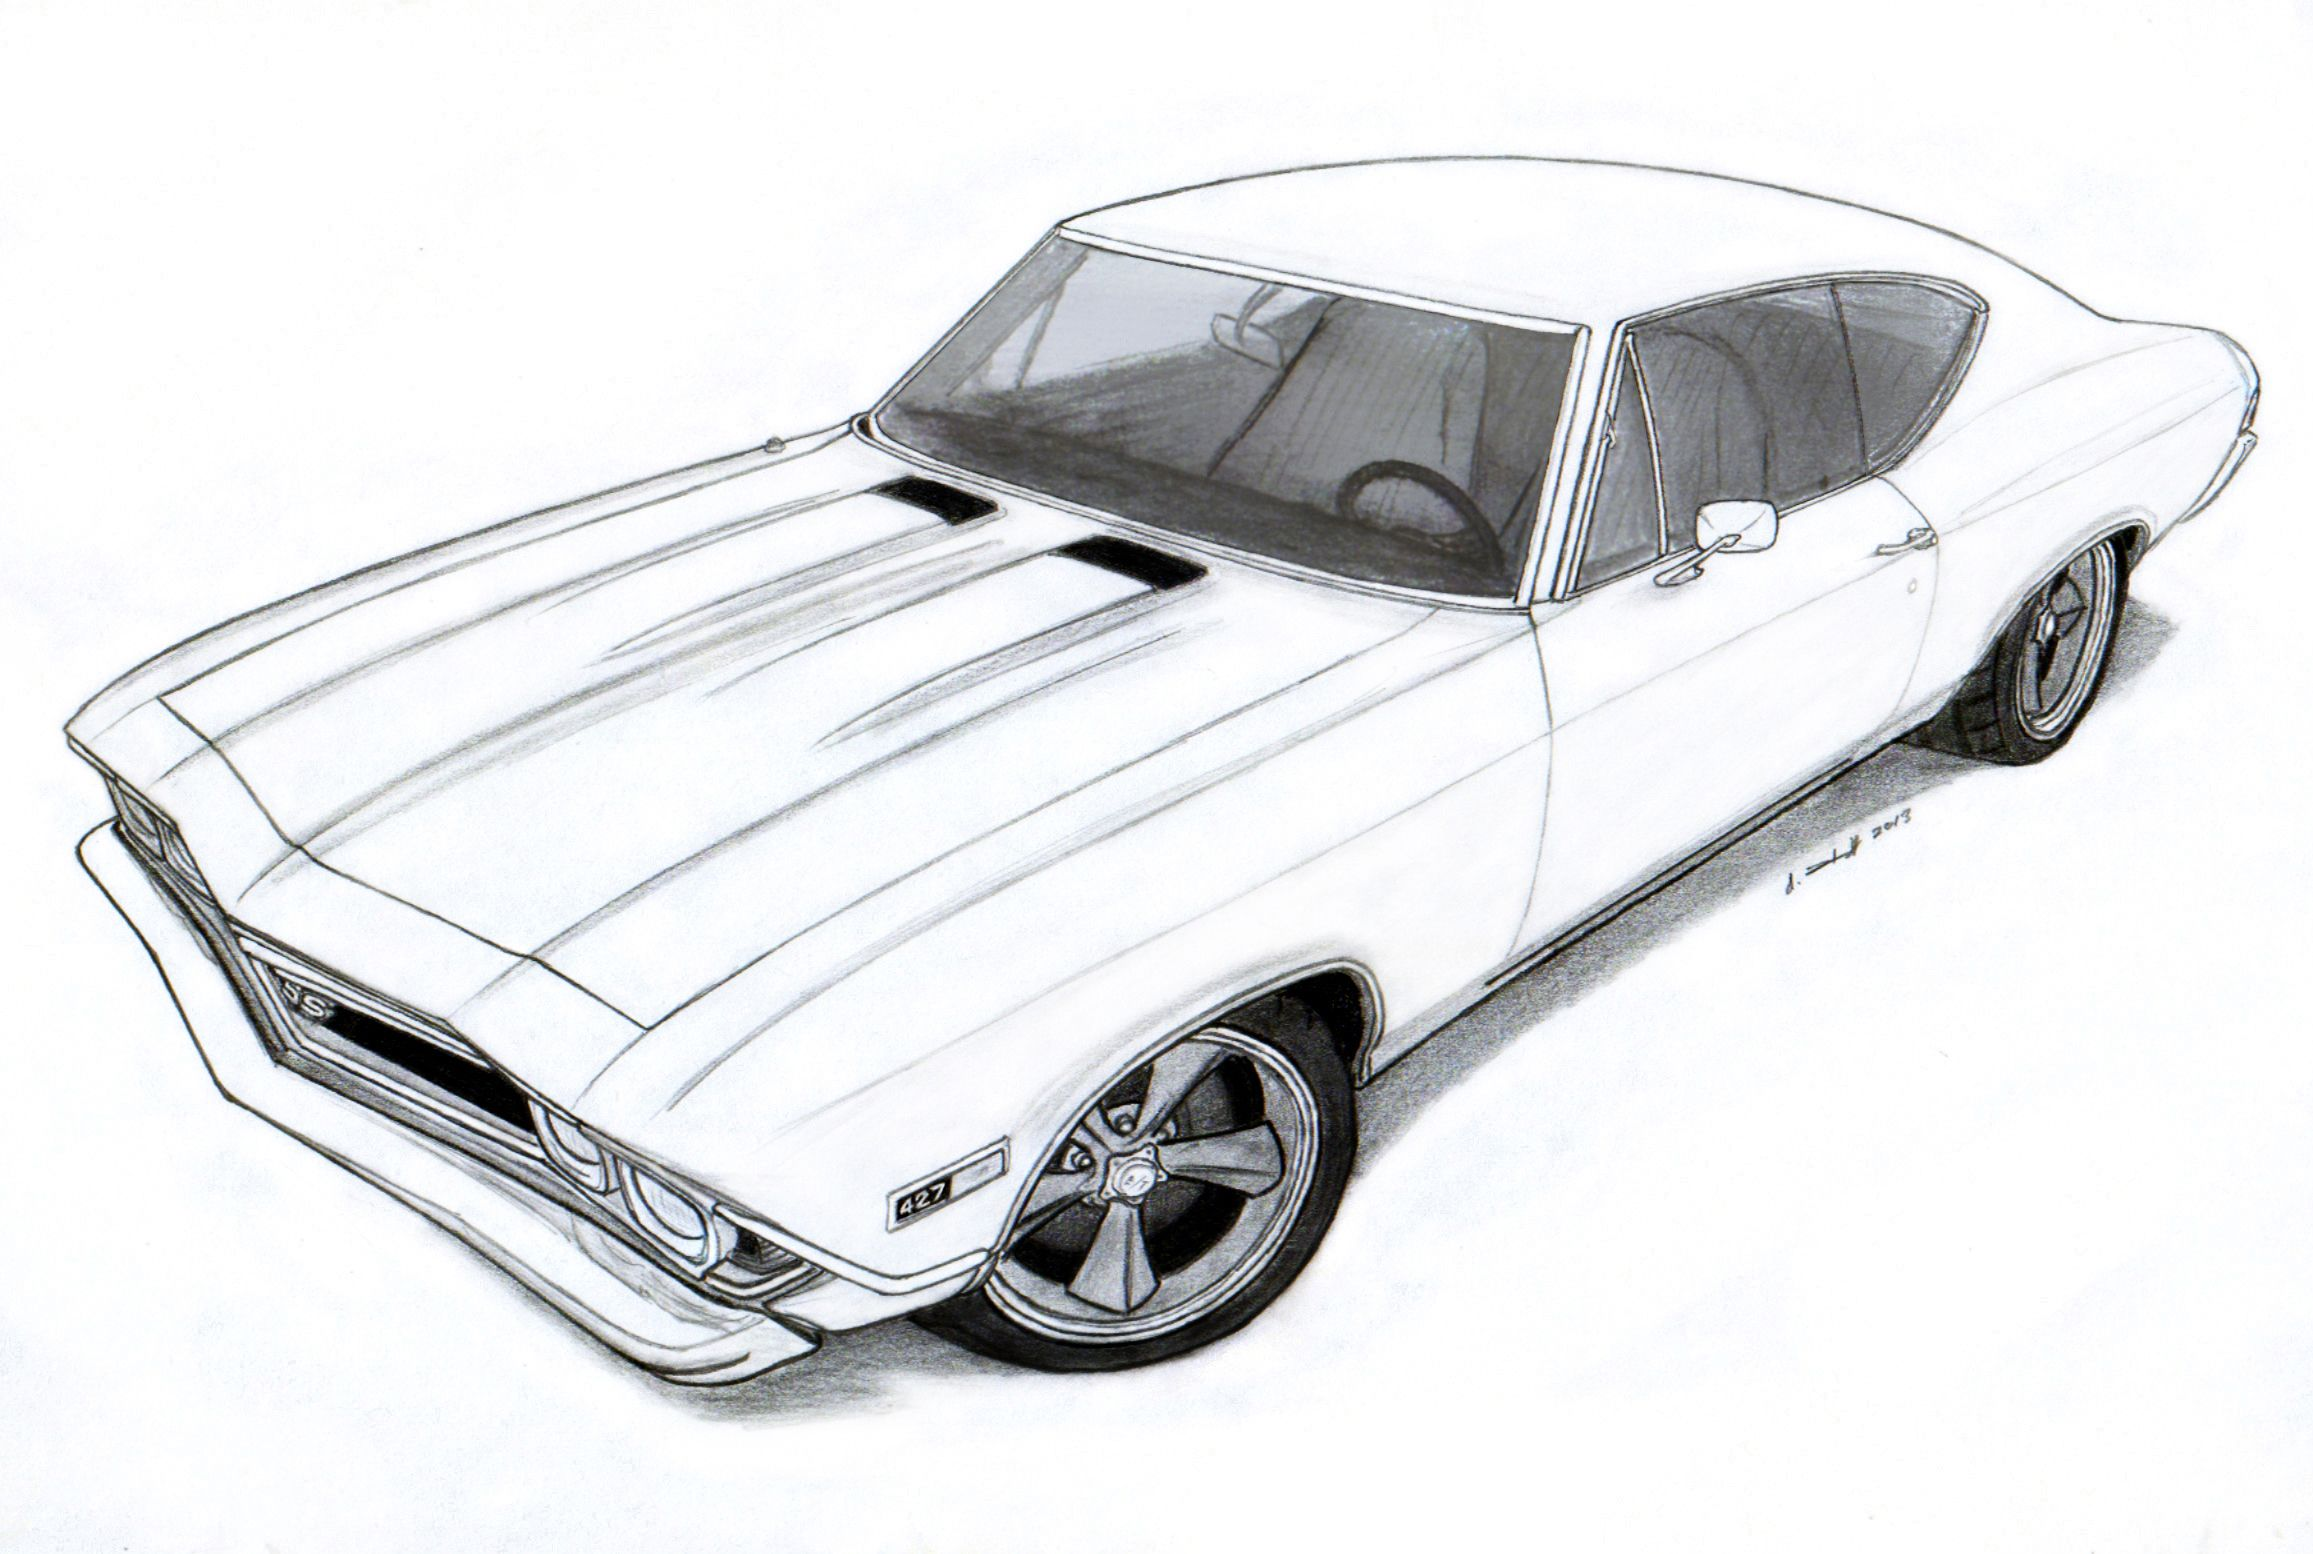 Ss chevelle 1969 clipart image freeuse download 1968 Chevrolet Chevelle SS Pro Touring Drawing by Vertualissimo ... image freeuse download